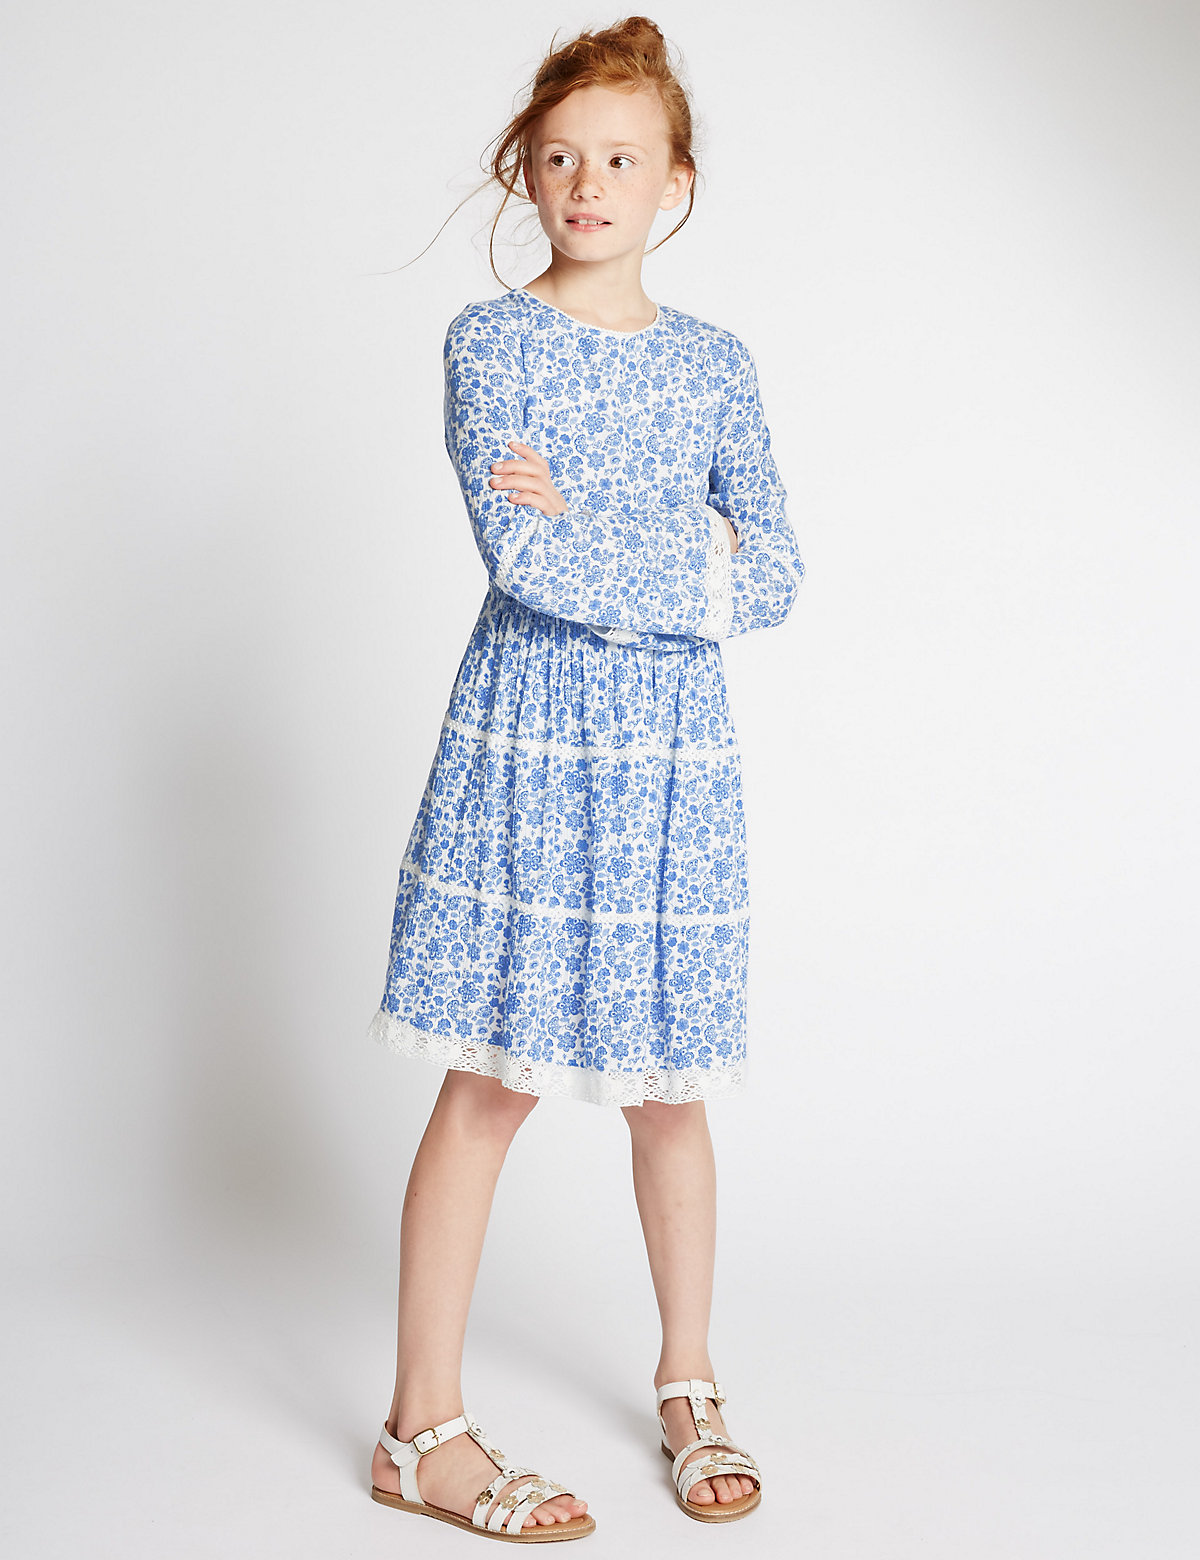 Lace Trim Floral Dress (5-14 Years)